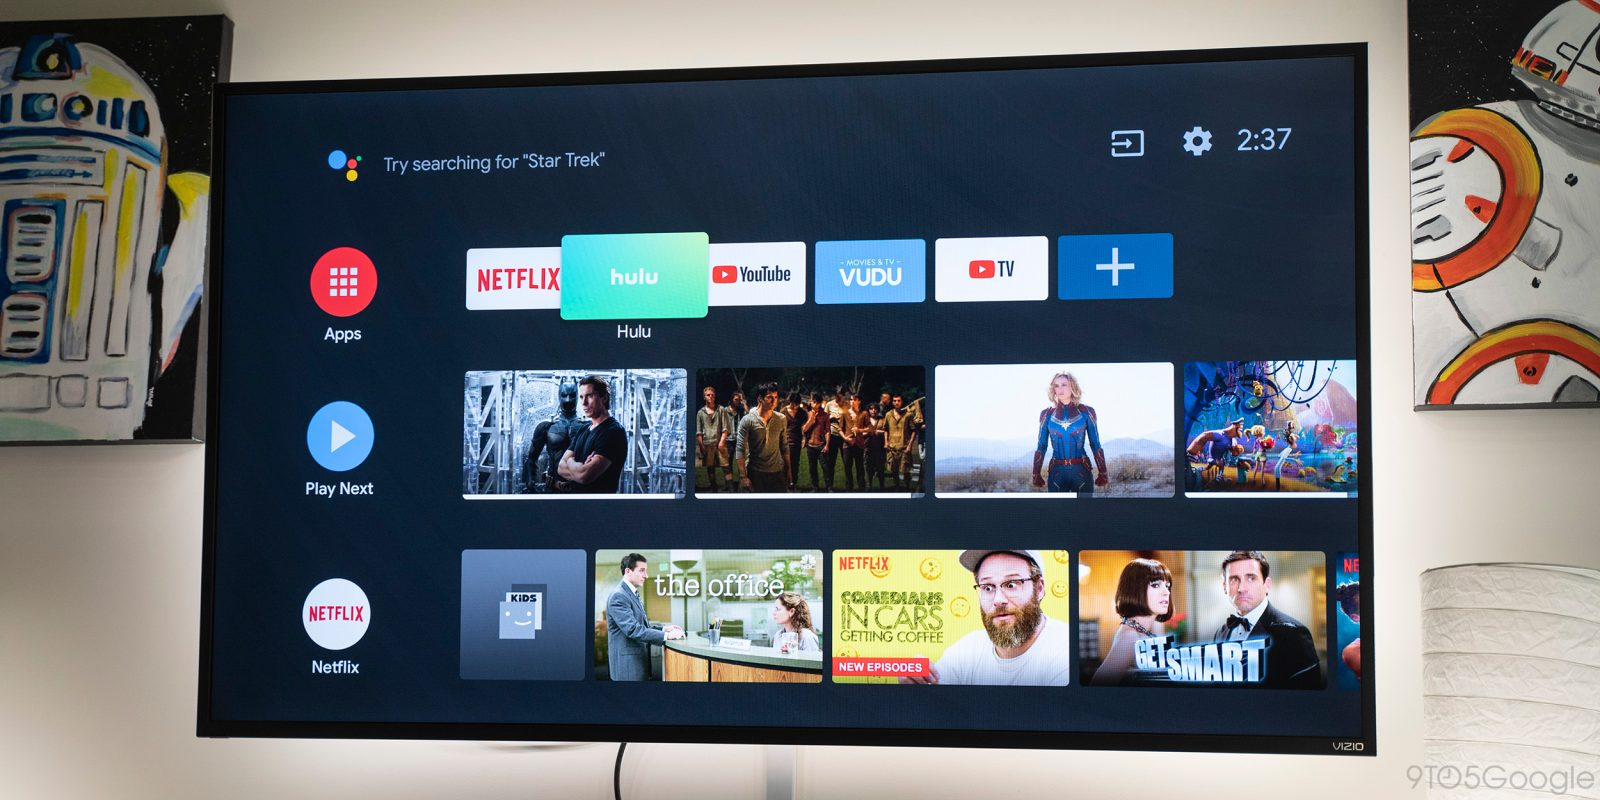 Google adds Data Saver to Android TV starting in India